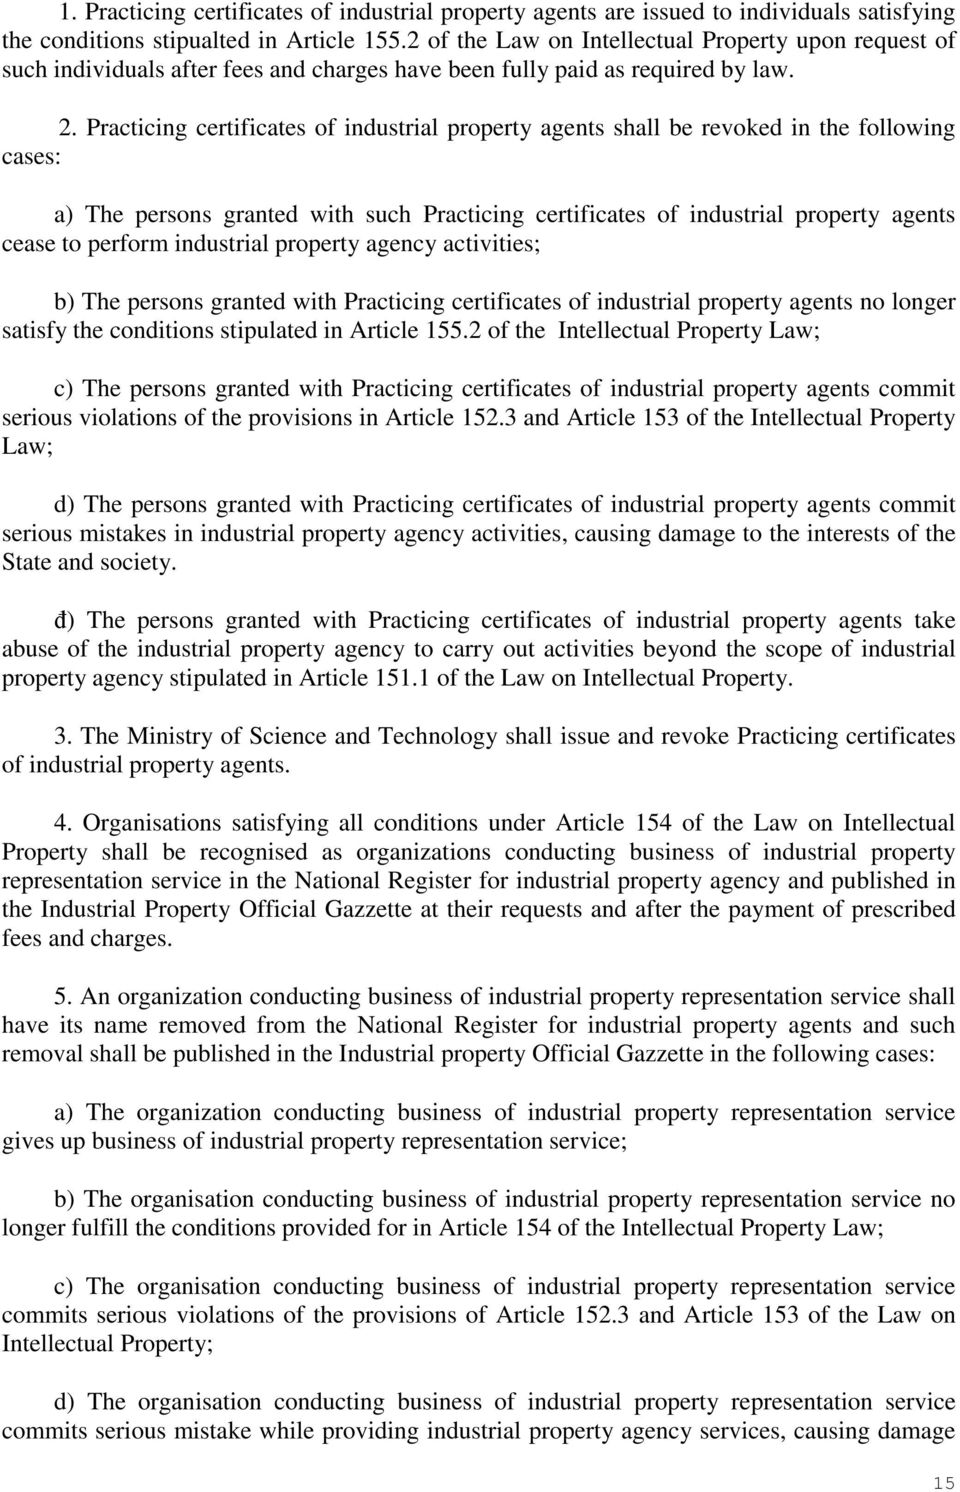 Practicing certificates of industrial property agents shall be revoked in the following cases: a) The persons granted with such Practicing certificates of industrial property agents cease to perform